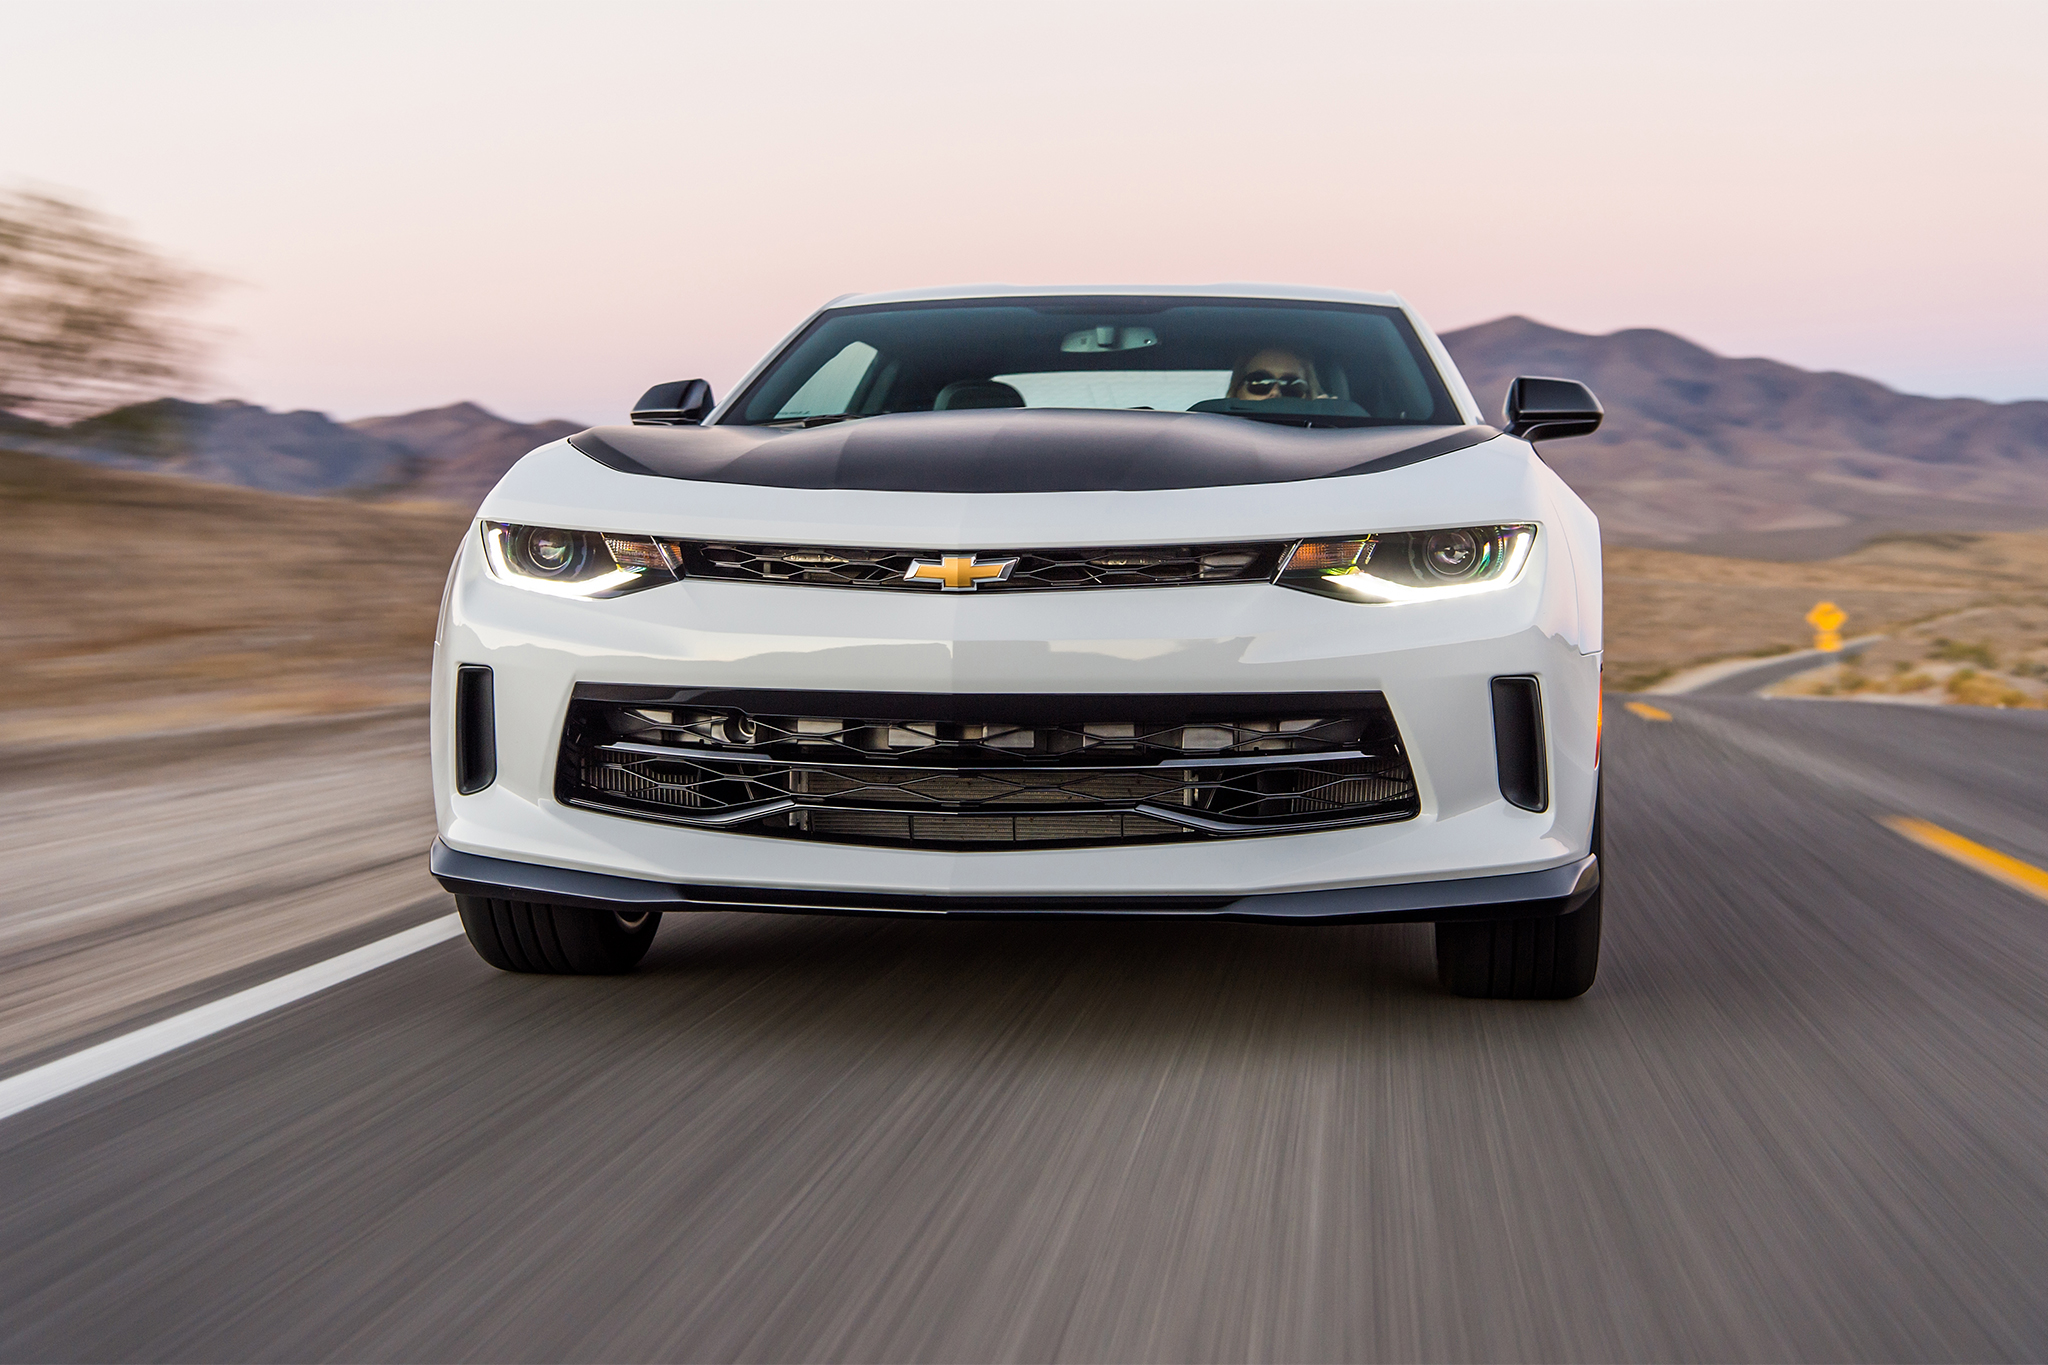 2017 Chevrolet Camaro V 6 1le One Week Review Automobile Magazine 2004 Chevy 2500hd 1 Engine Aveo Diagram